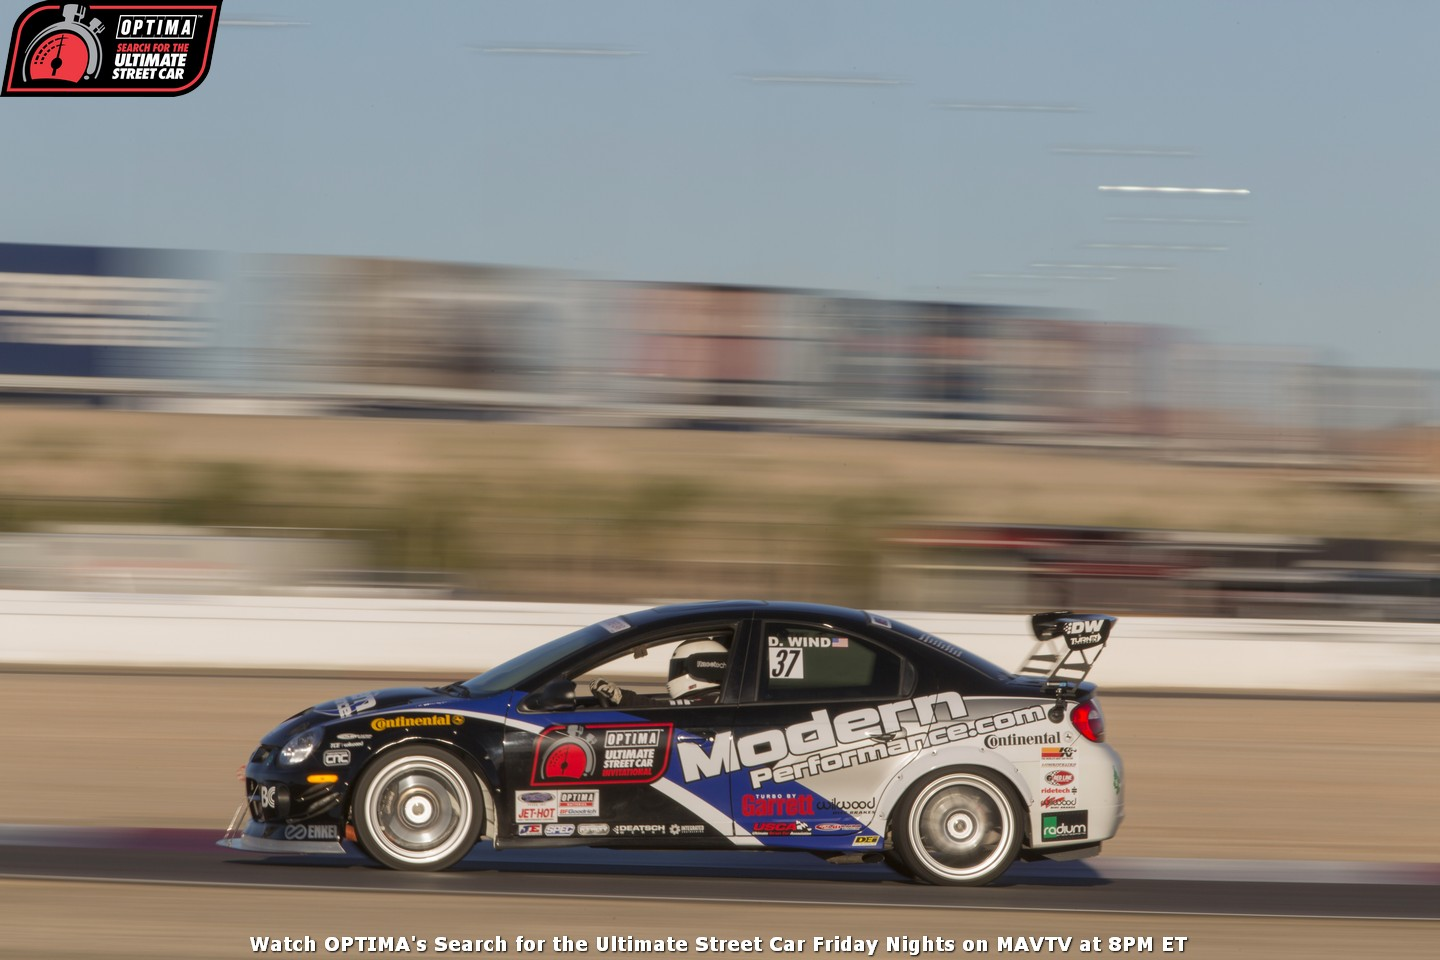 Douglas-Wind-2004-Dodge-SRT4-OPTIMA-Ultimate-Street-Car-Invitational-2014-BFGoodrich-Hot-Lap-Challenge_308.jpg